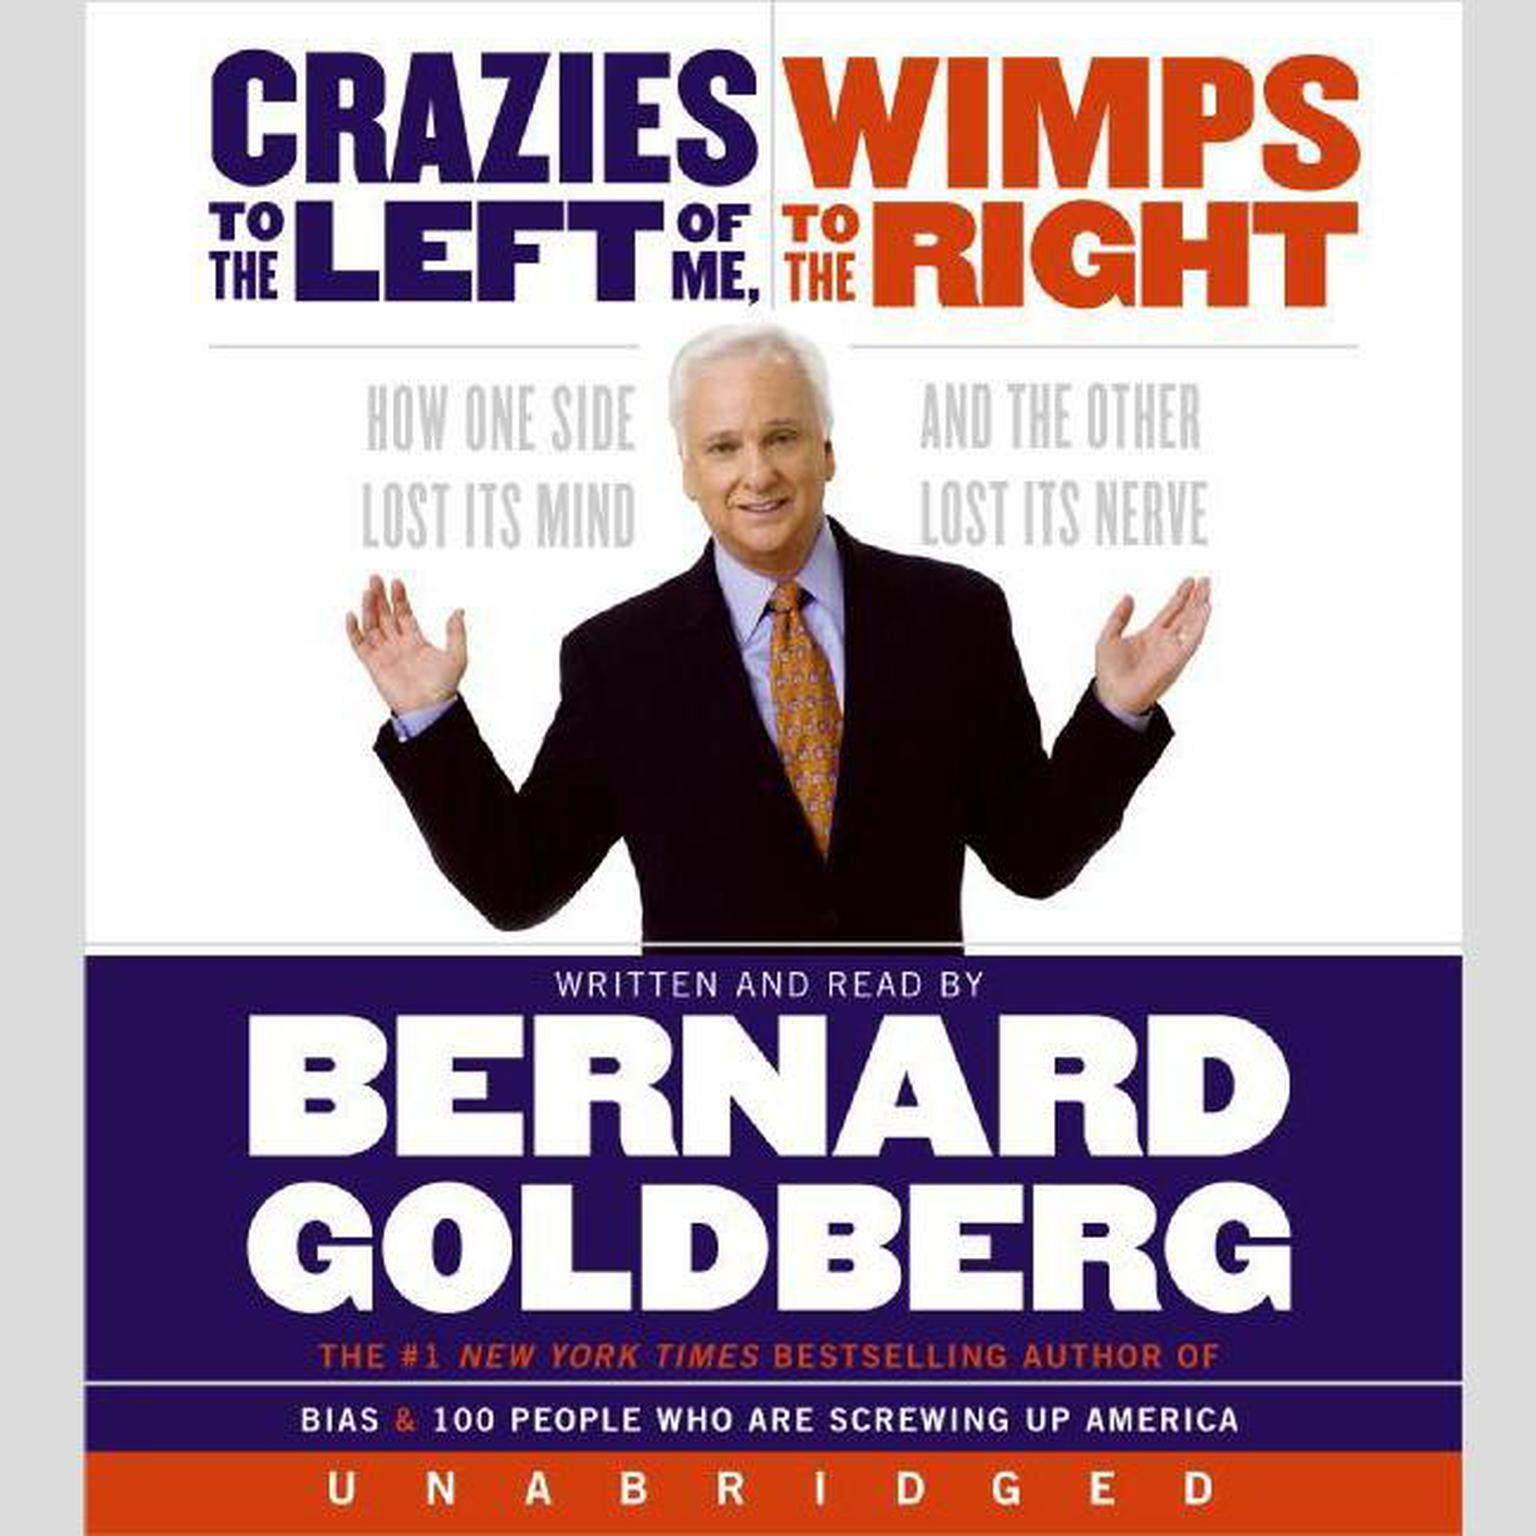 Printable Crazies to the Left of Me Wimps to the Right: How One Side Lost Its Mind and the Other Its Nerve Audiobook Cover Art